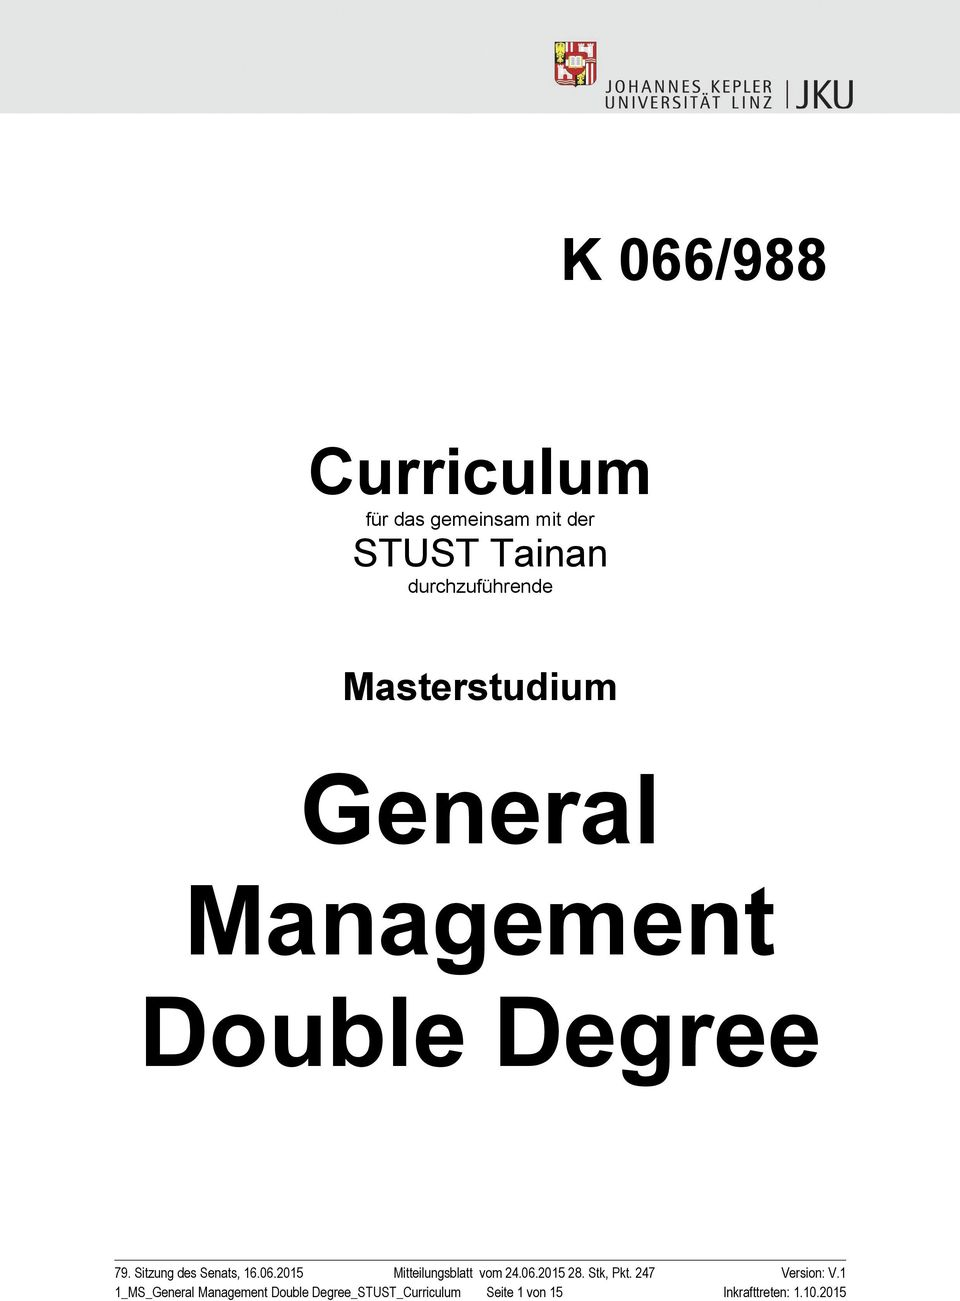 Management Double Degree 1_MS_General Management